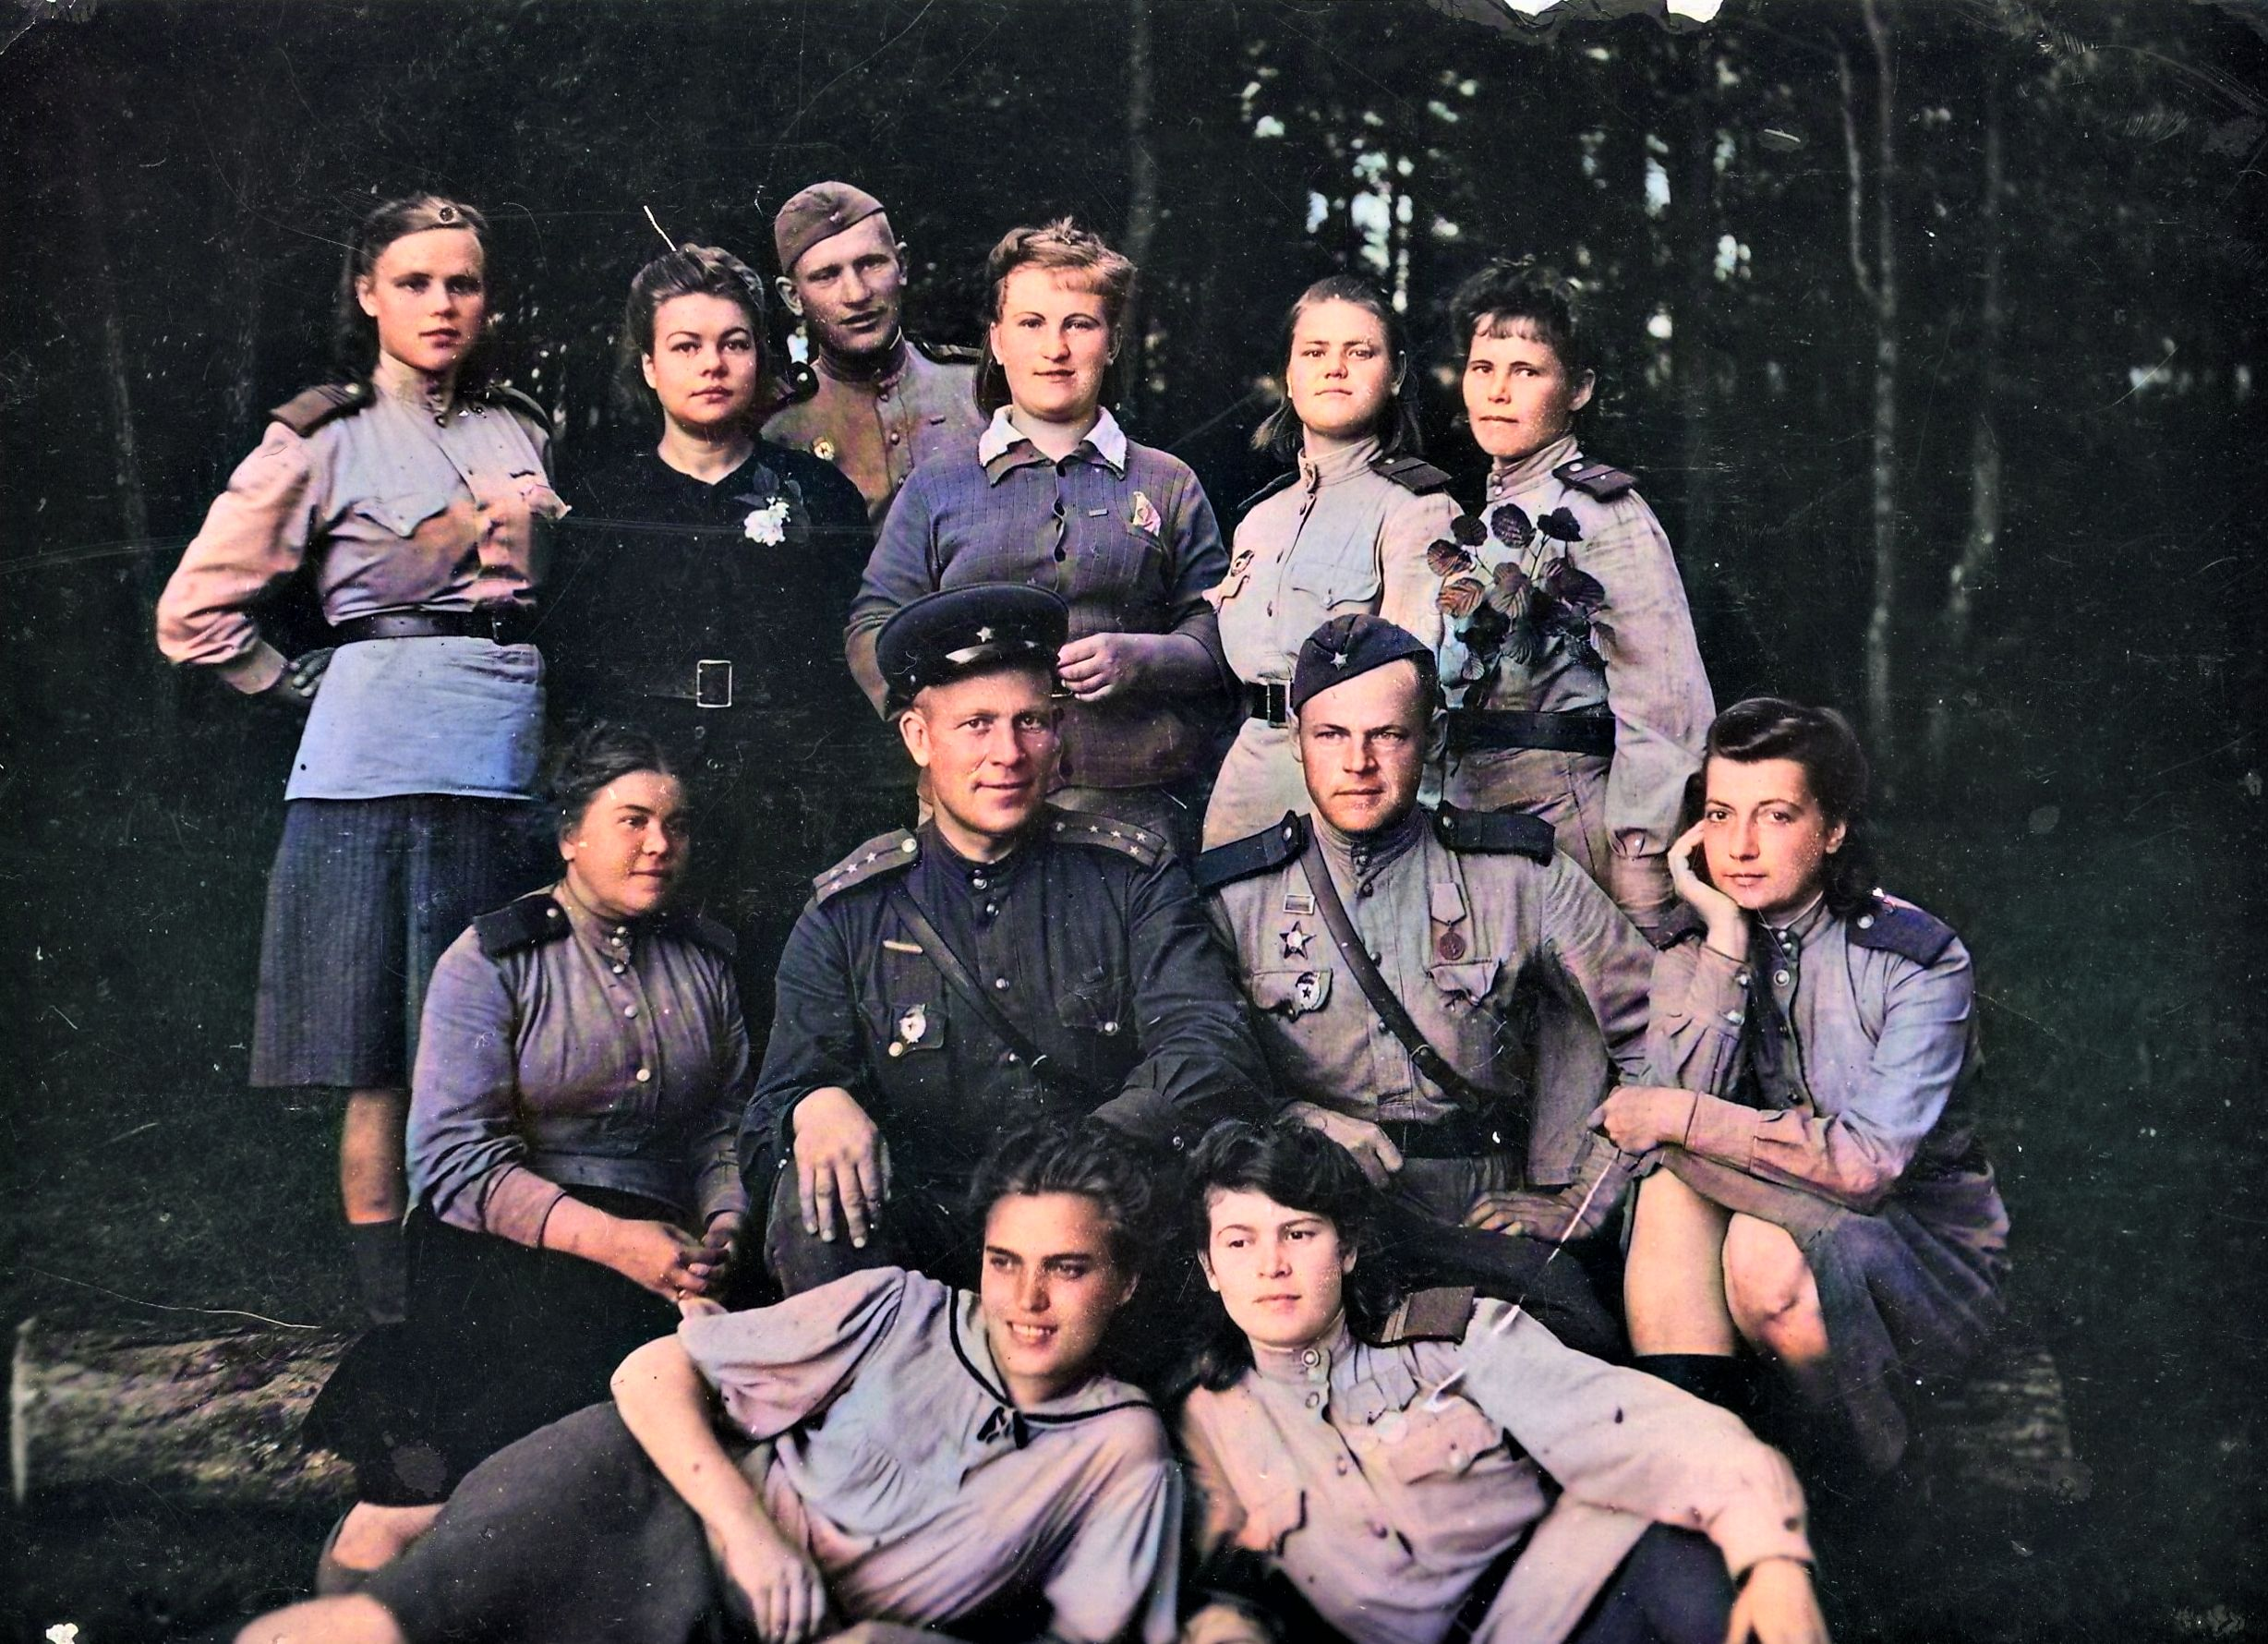 WWII was above all won by the blood and sacrifice of the Soviet people